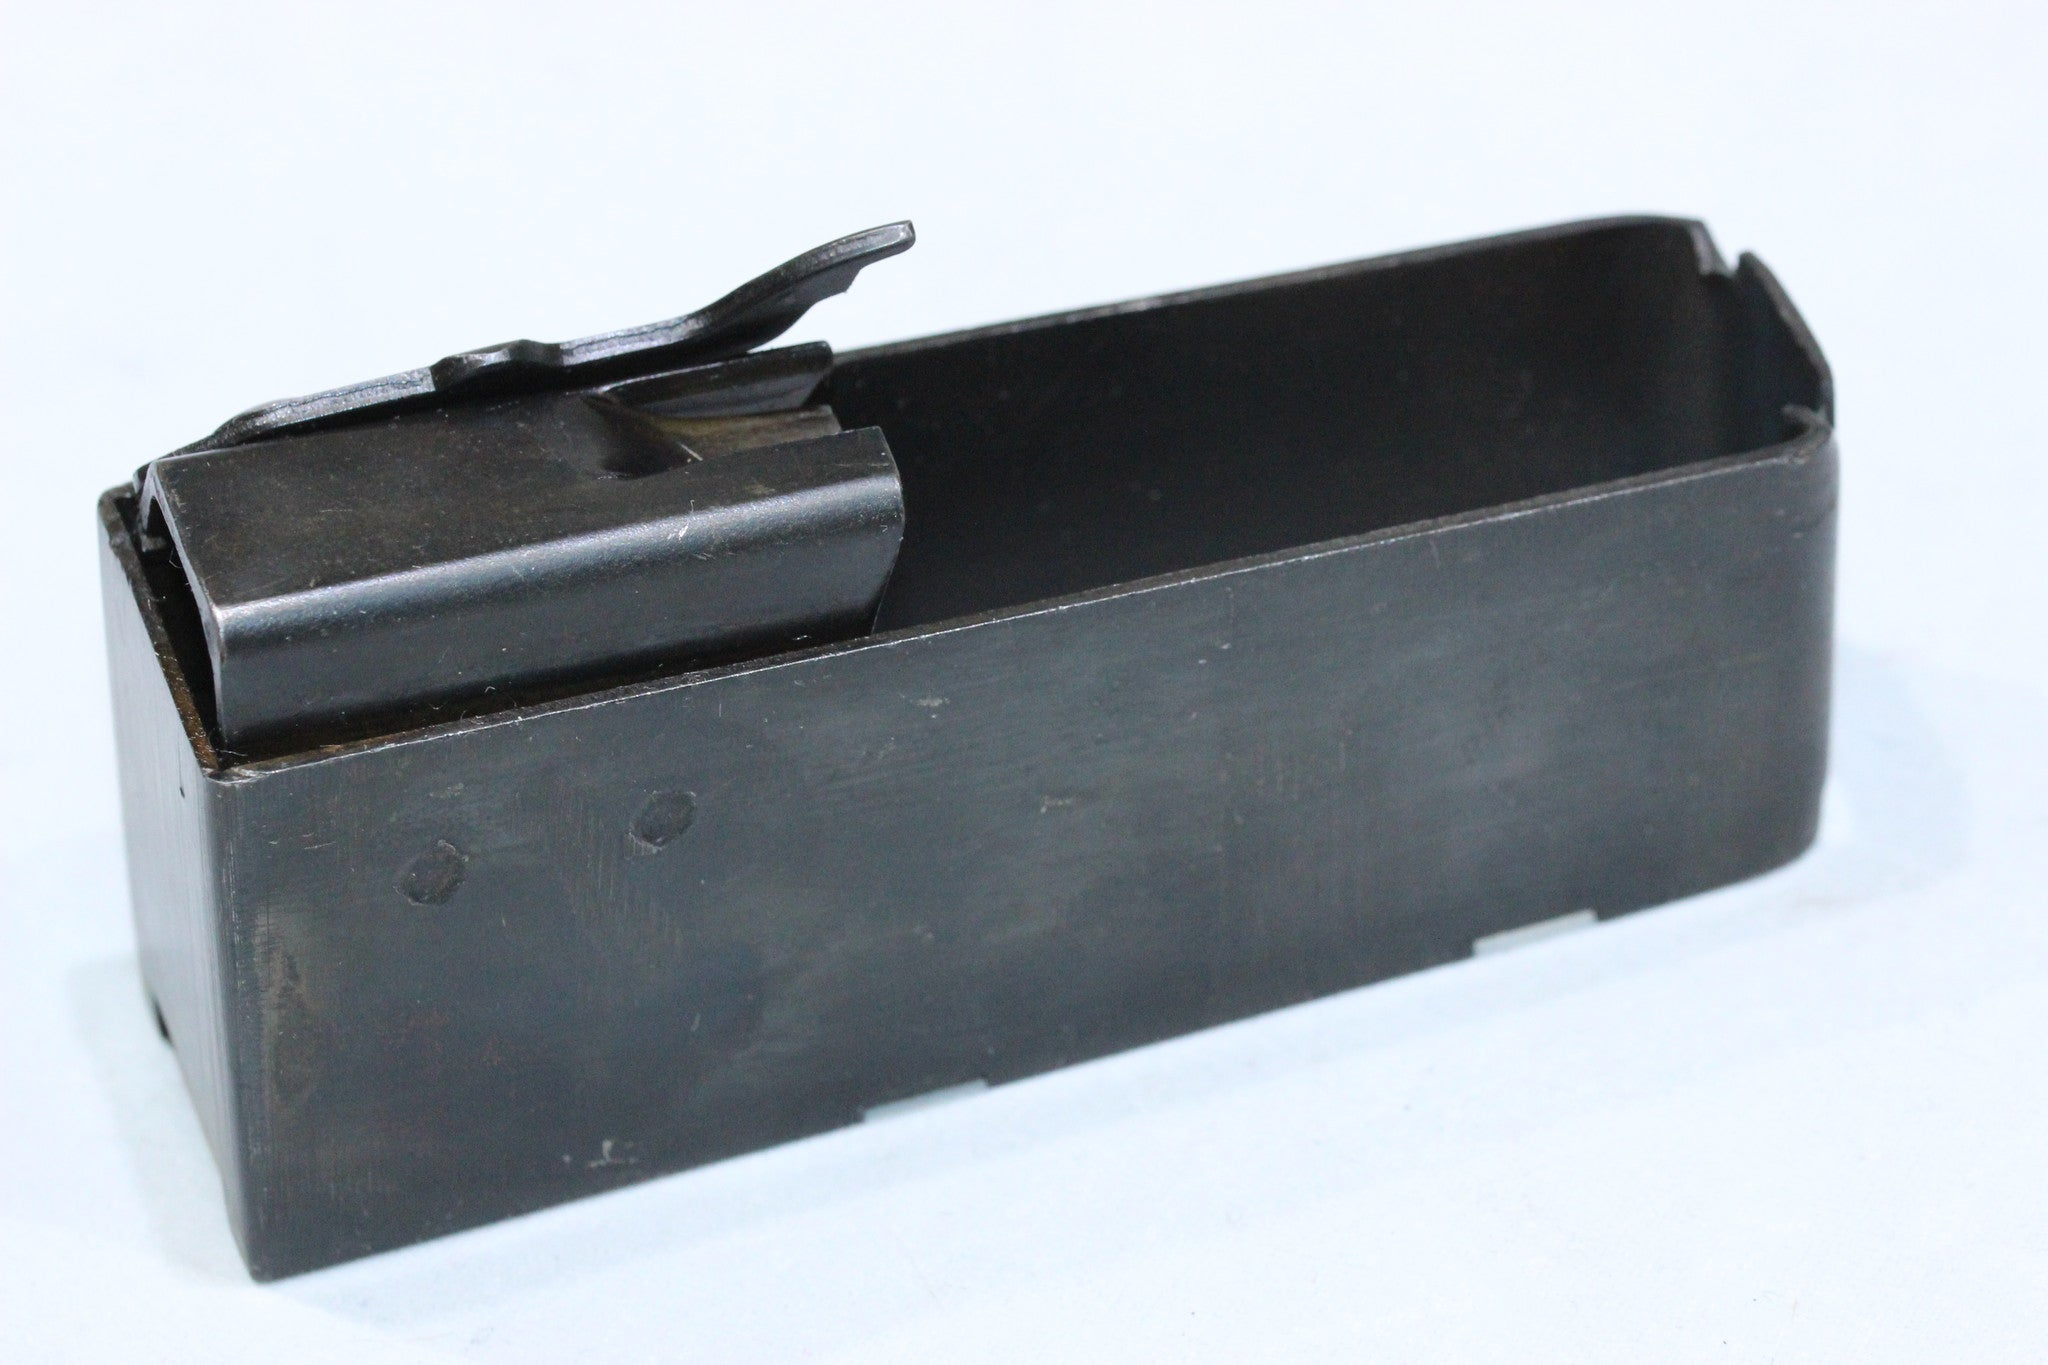 Magazine Box for .22 Hornet - Outer